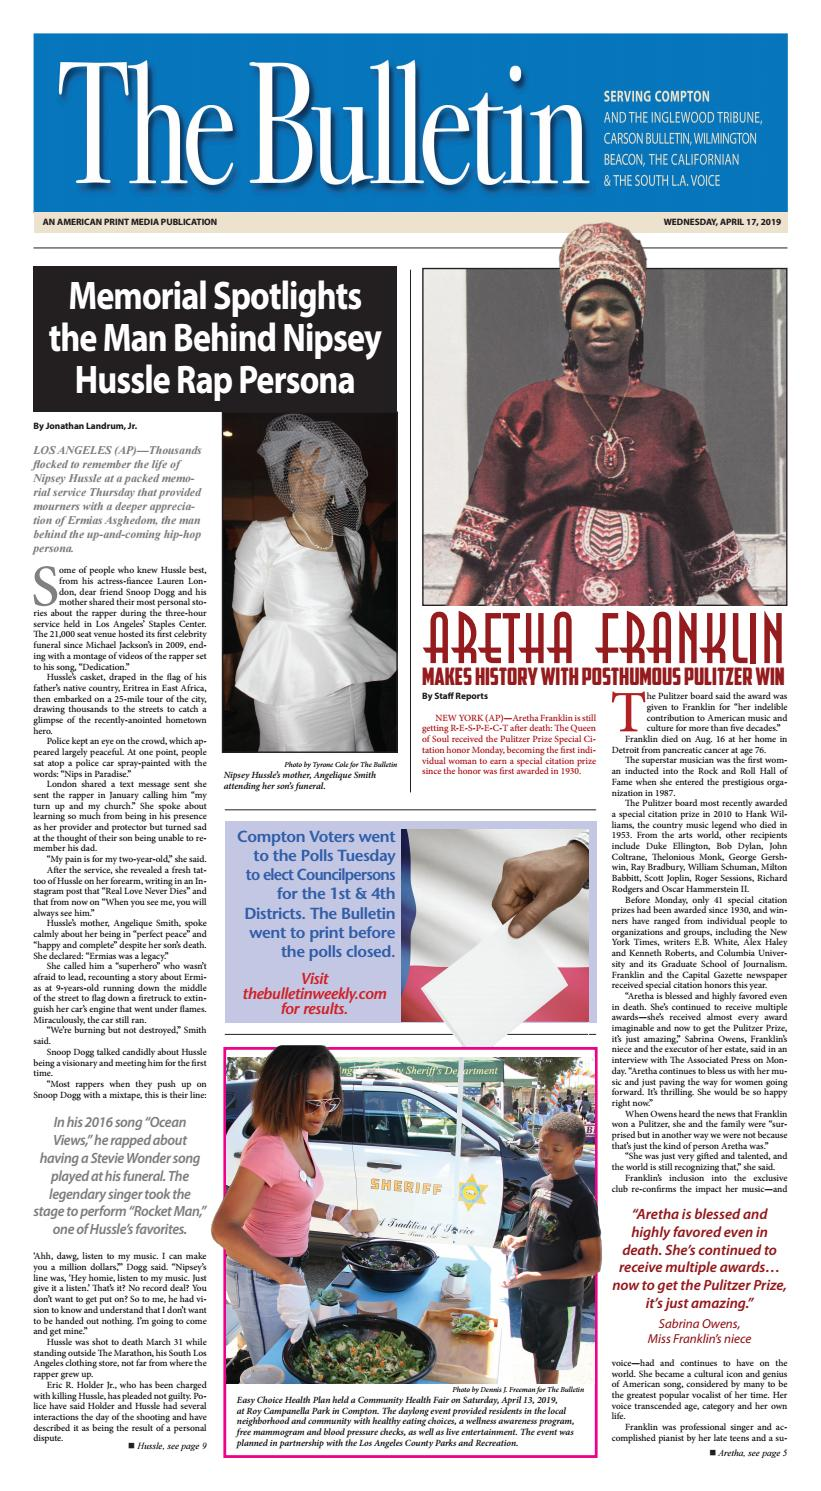 ad25ebe6e The Bulletin by The Compton Bulletin - issuu